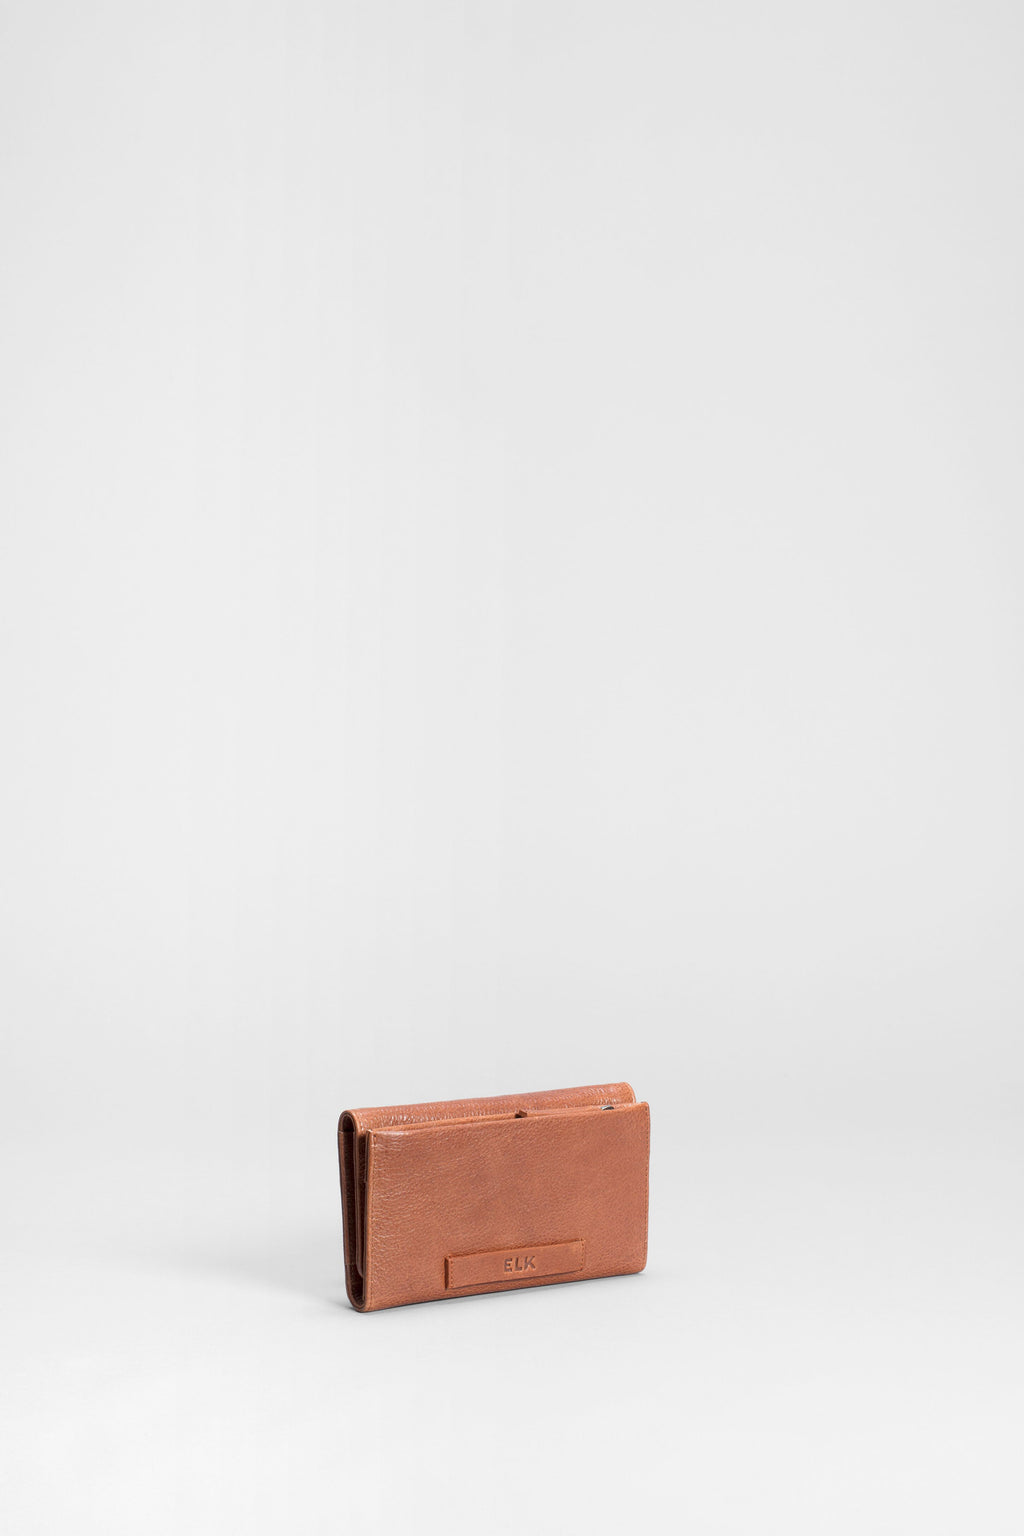 ELK KULMA TAN WALLET